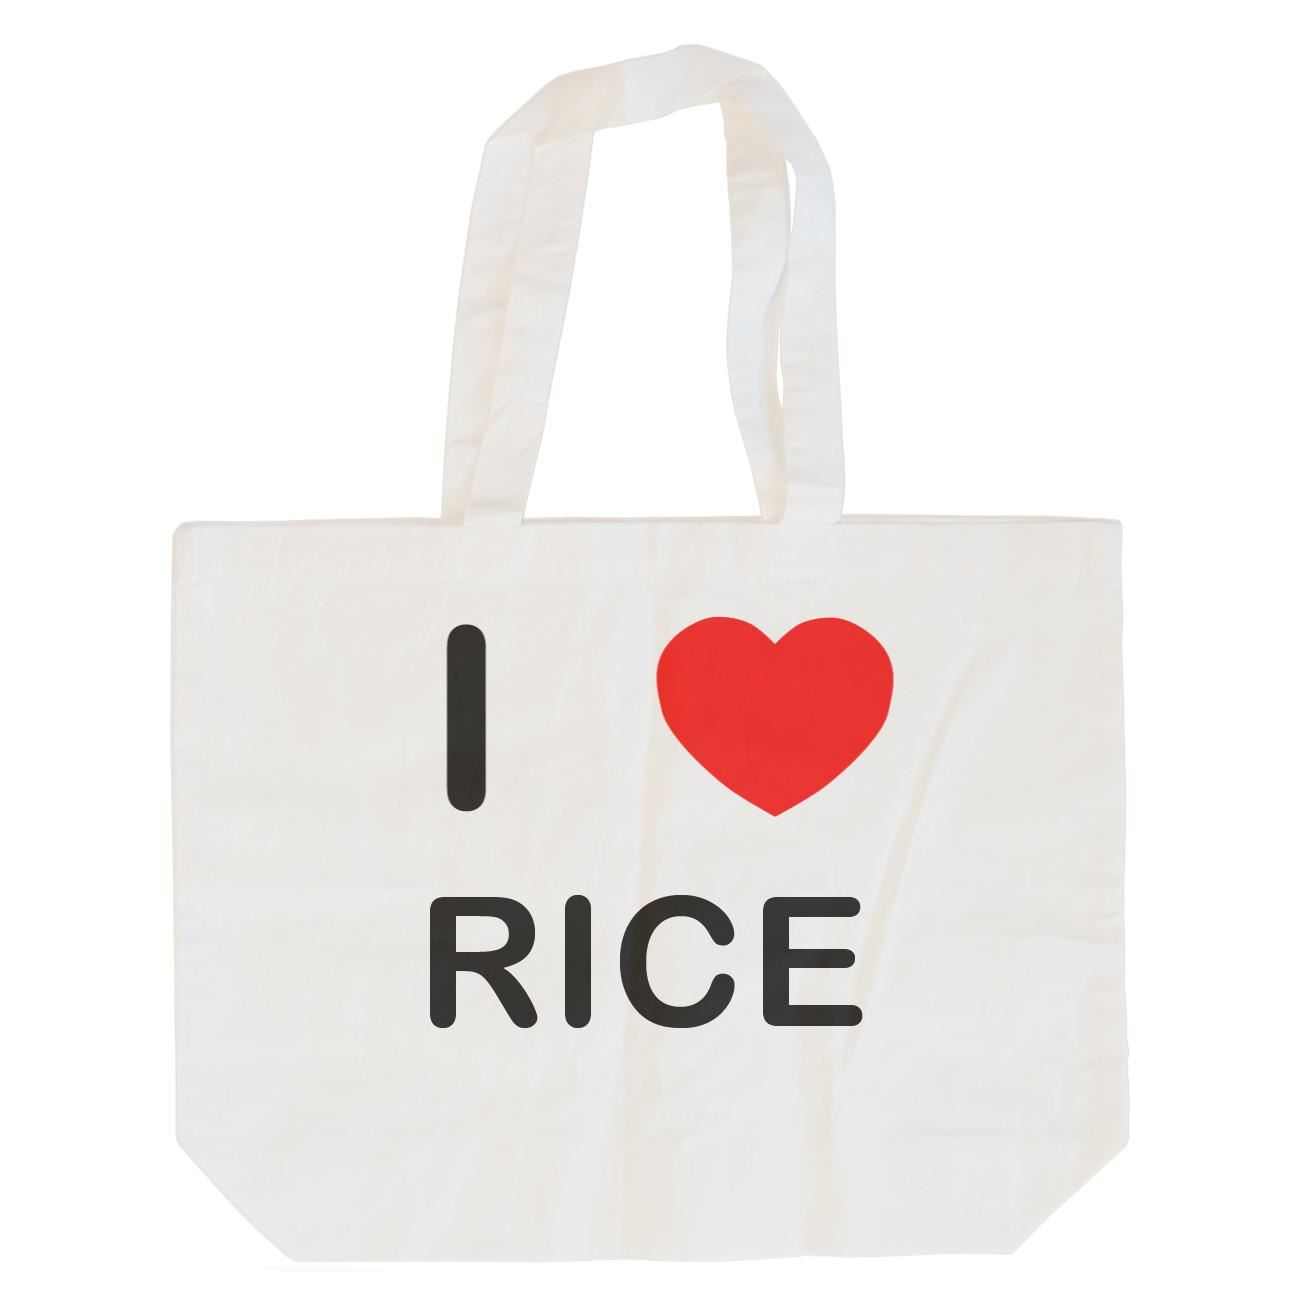 I Love Rice - Cotton Bag | Size choice Tote, Shopper or Sling